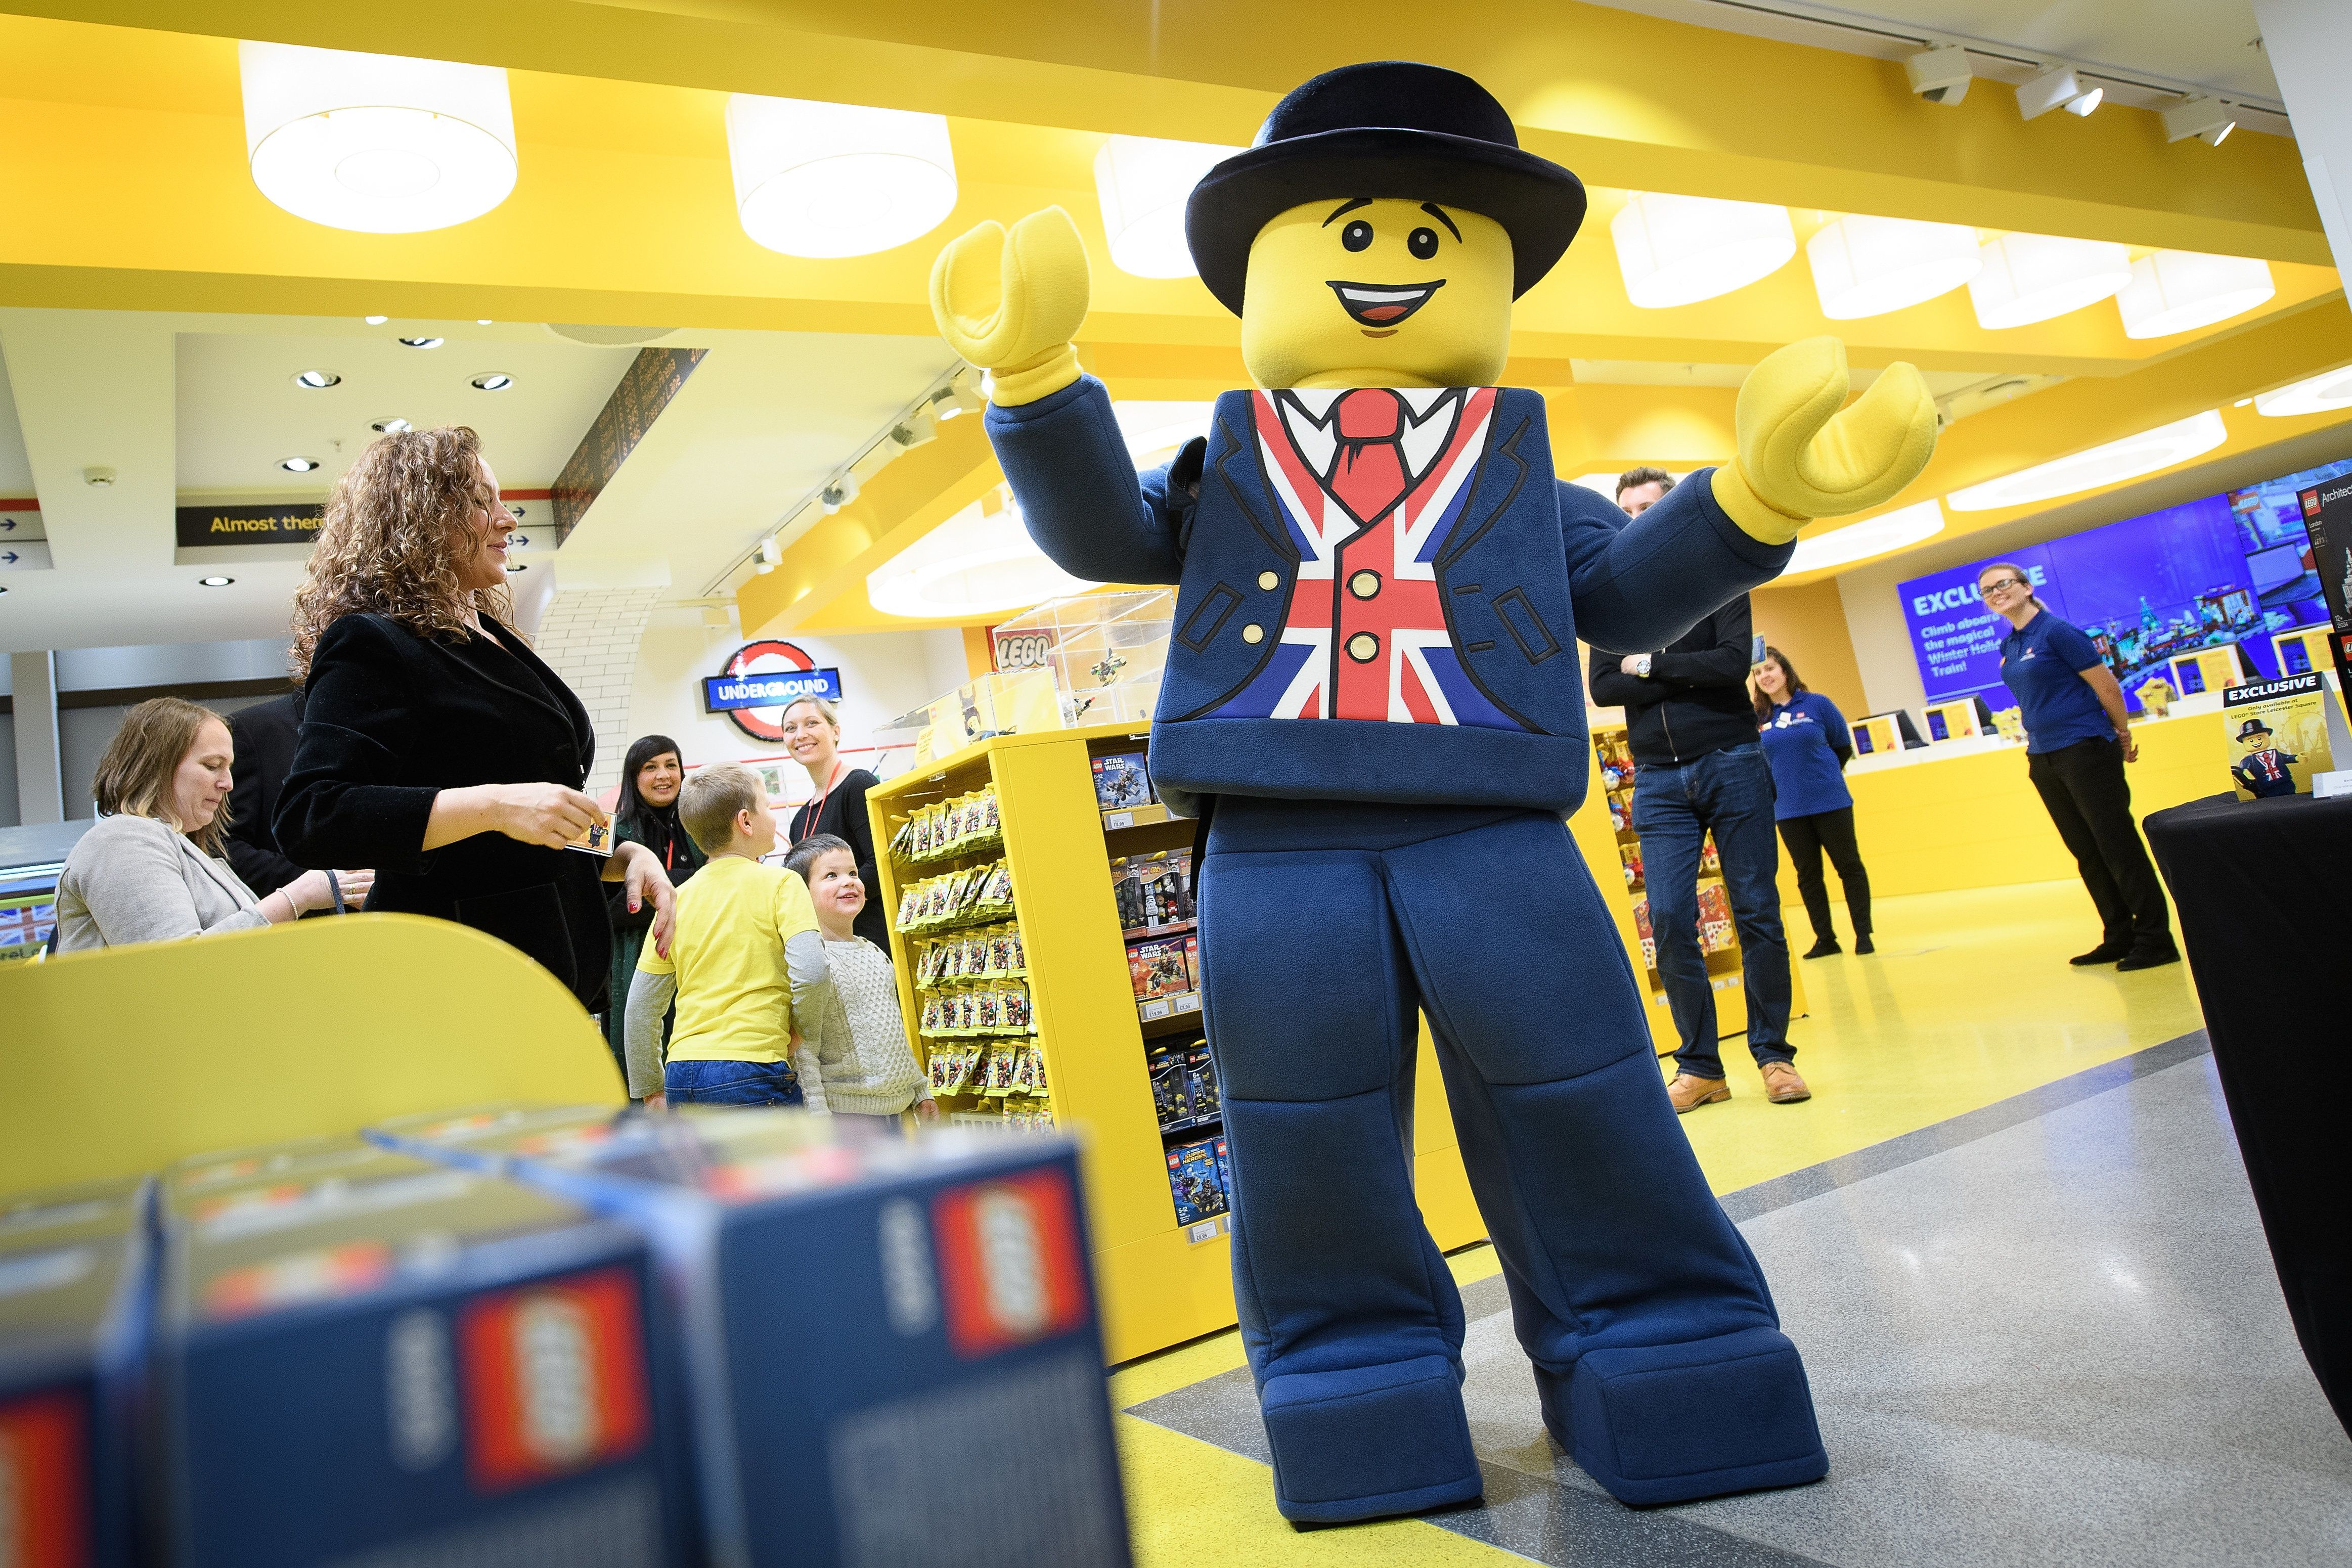 LONDON, ENGLAND - NOVEMBER 16: 'Lester', the London Lego mascot, is seen during an opening party event at the new flagship Lego store on November 16, 2016 in London, England. The new landmark store is be the biggest Lego Brand Retail Store in the world, the 37th LEGO store in Europe and covers 914 sq metre total area, over two floors. (Photo by Leon Neal/Getty Images)